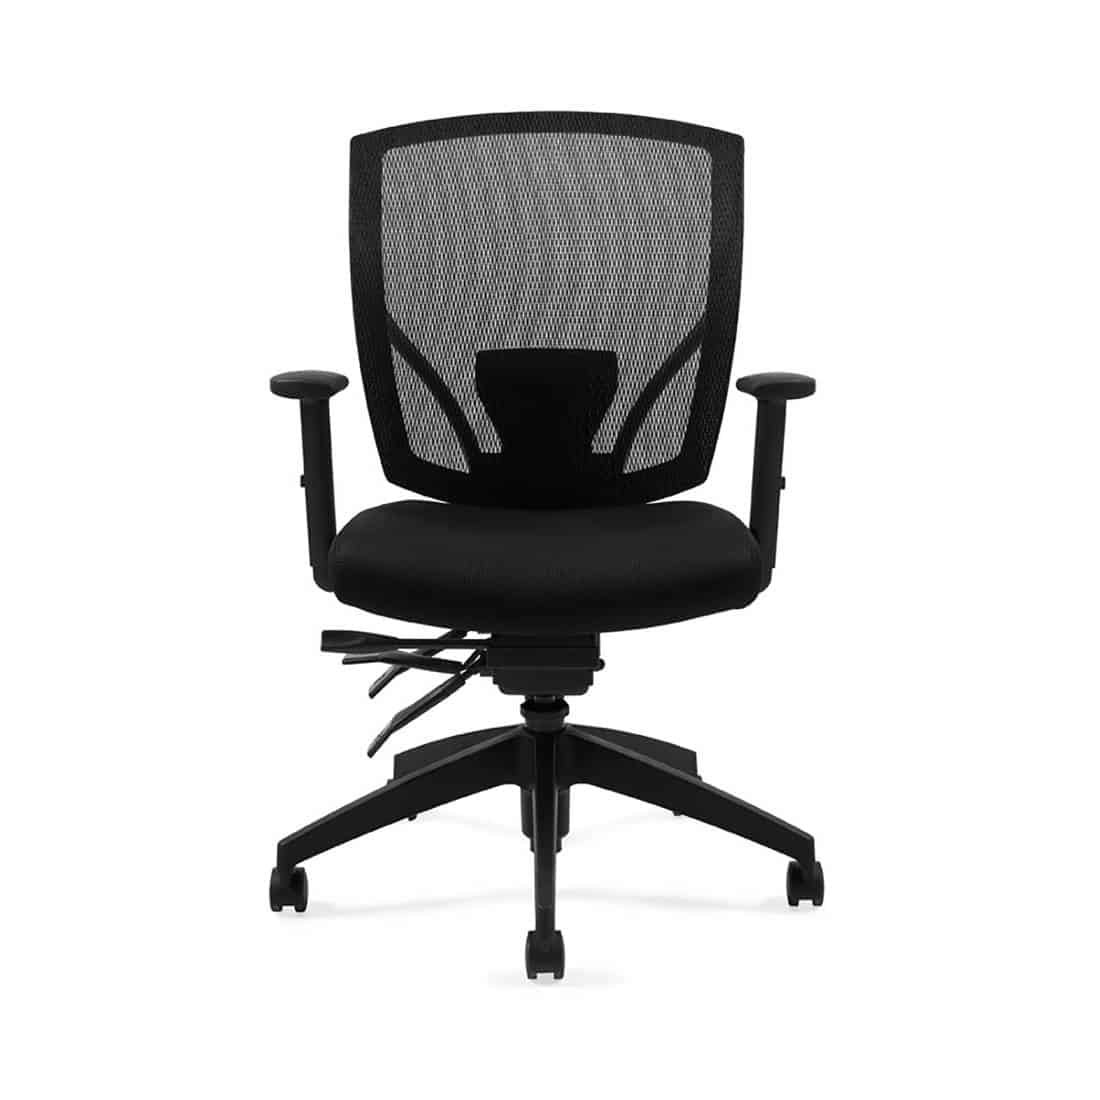 chair 1 2 ergonomic knee global otg mesh executive quick ship joyce